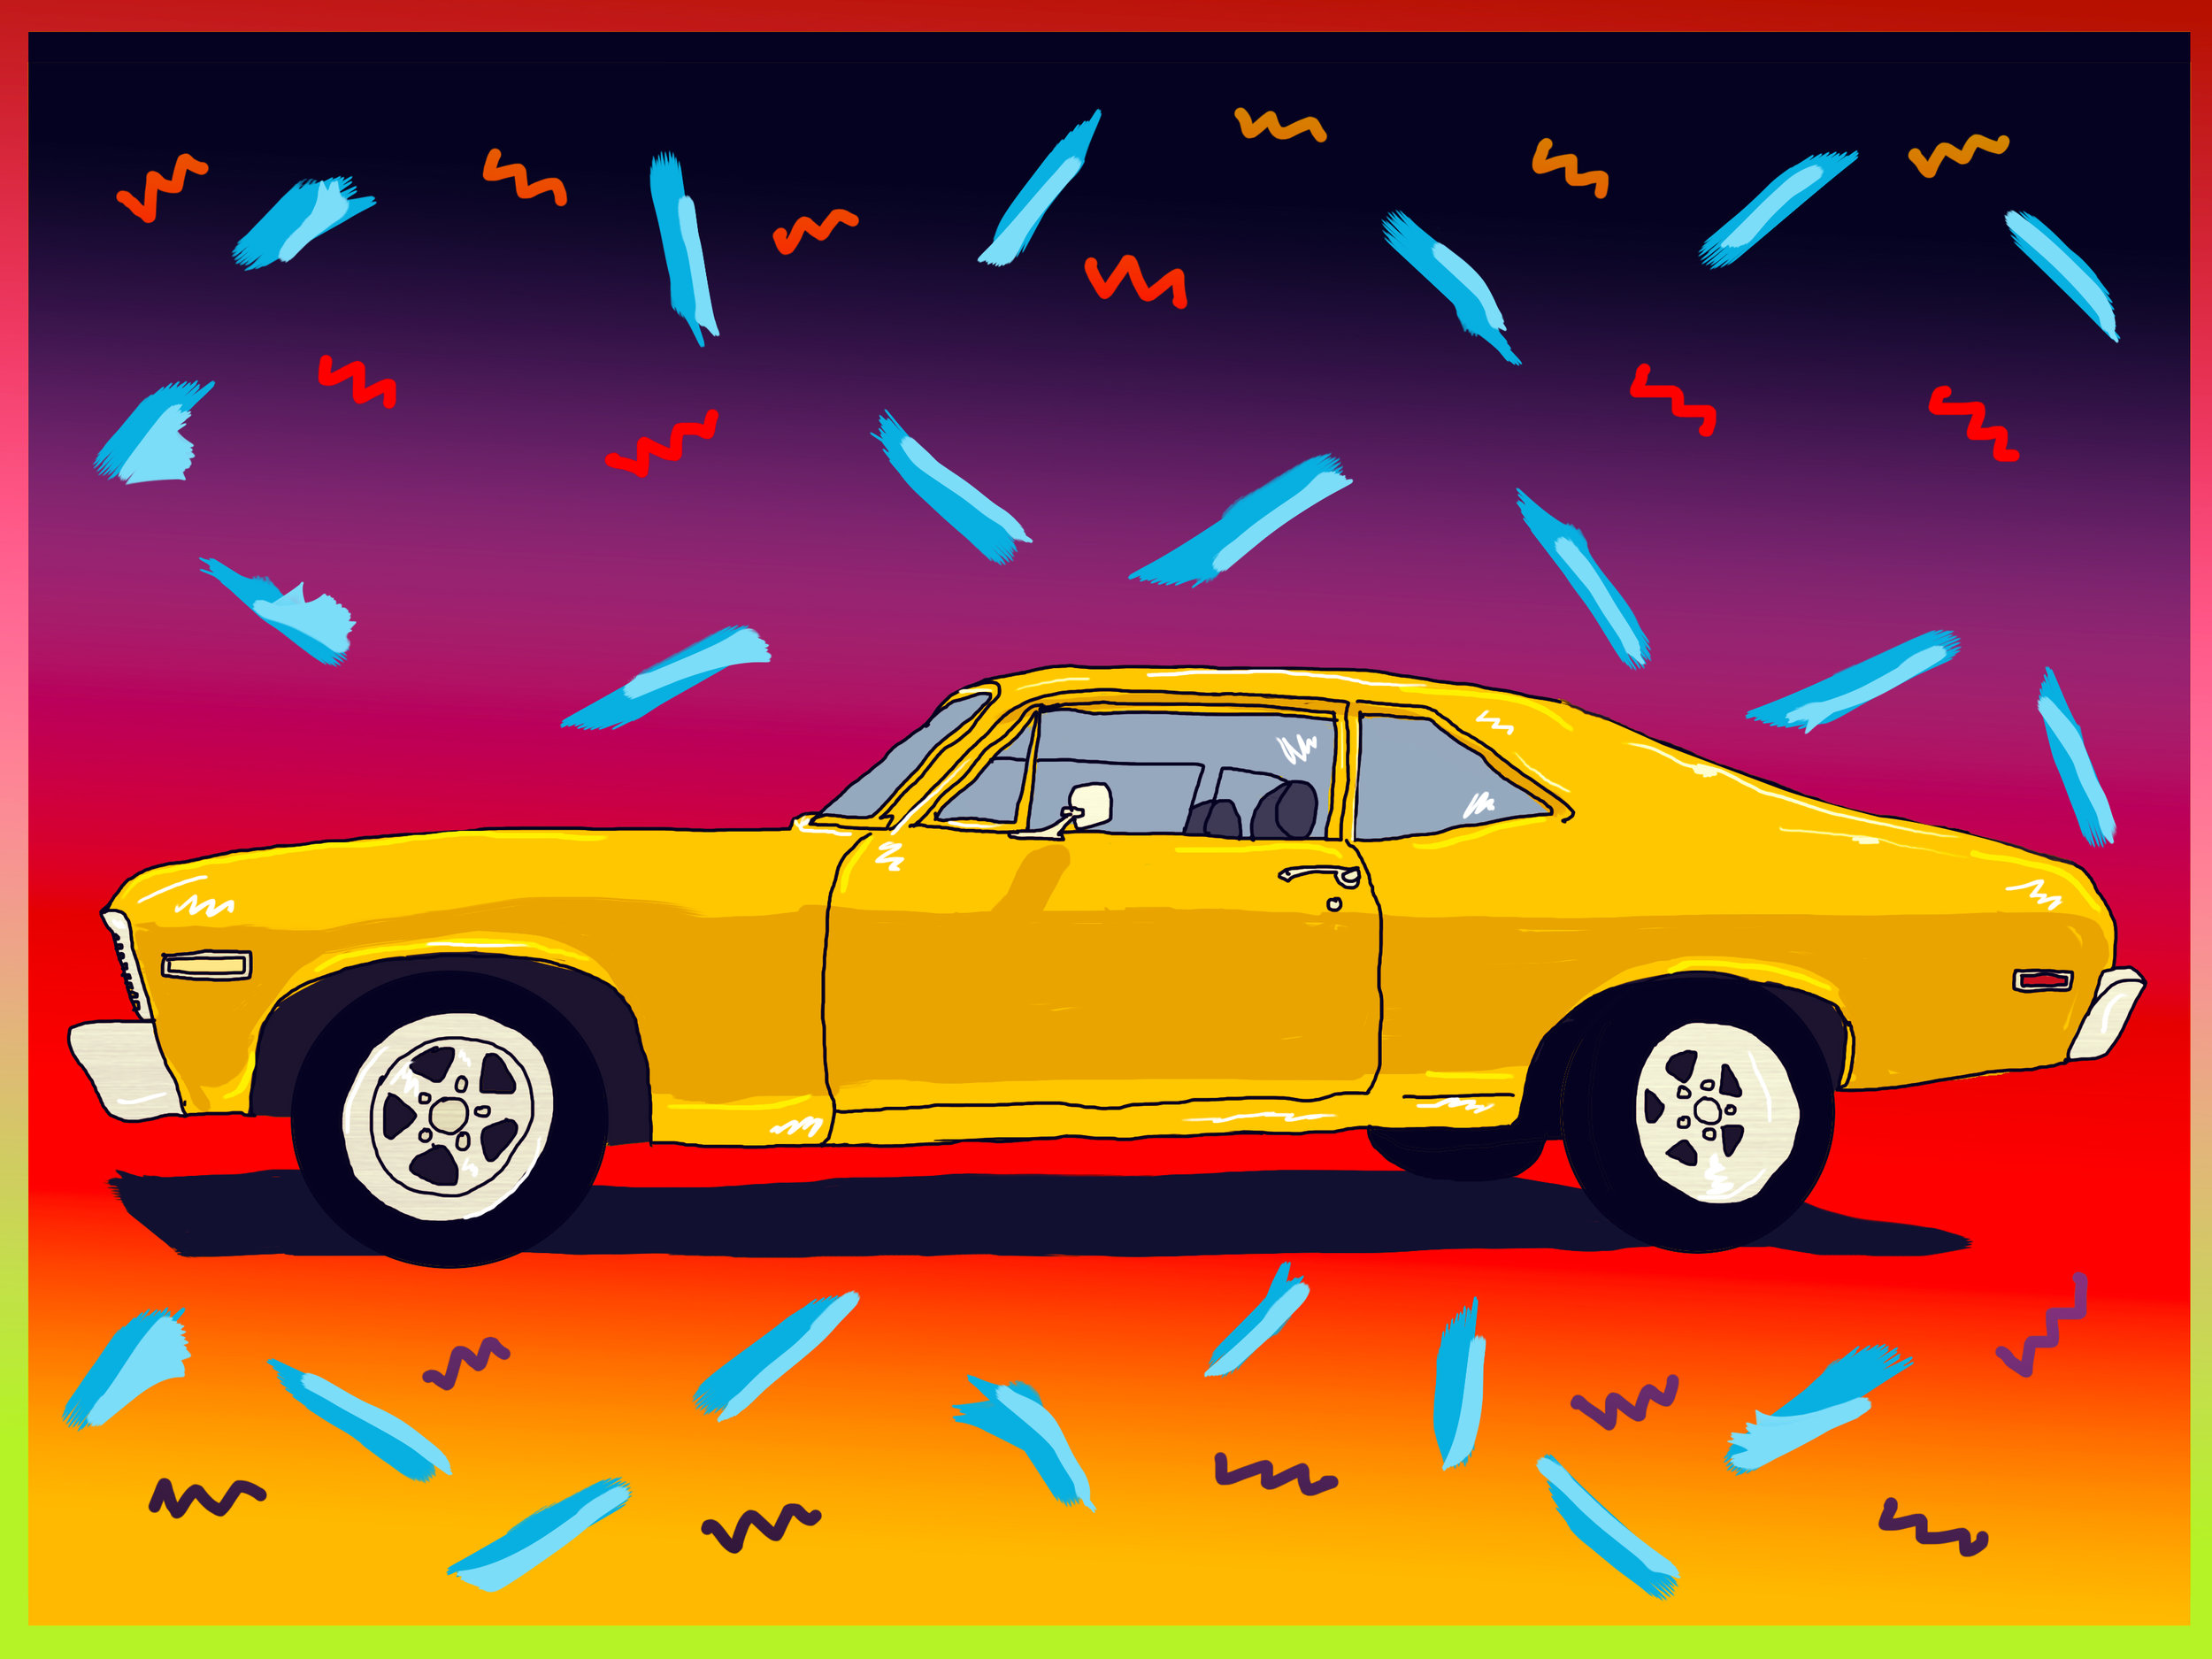 Car_Illustration_LK.jpg